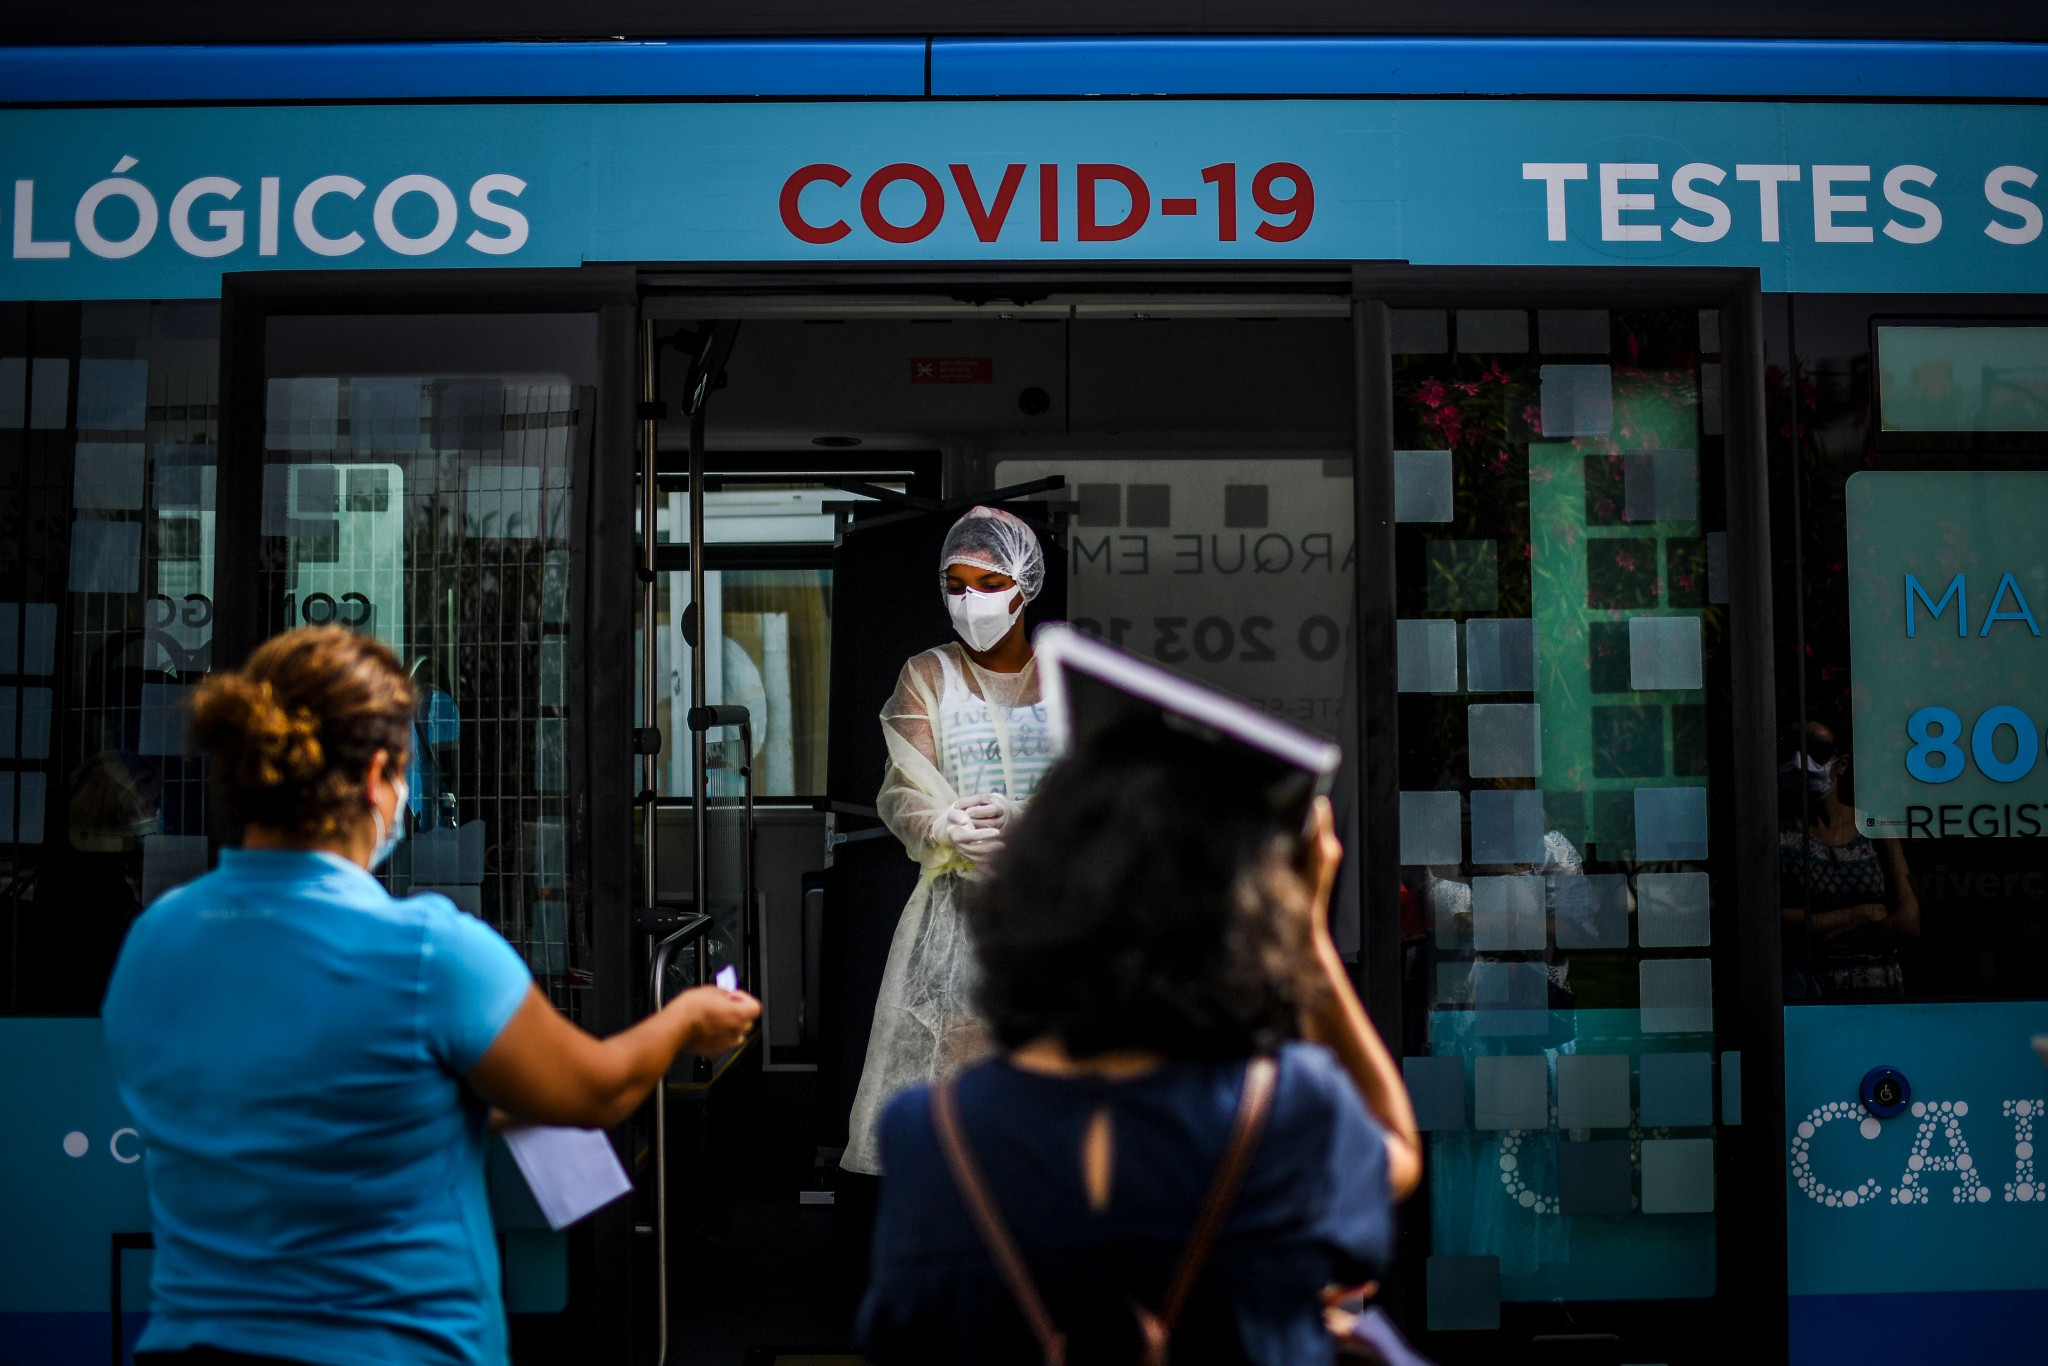 Portugal had been viewed as the European epicentre of the pandemic earlier in the year, but the infection rate has decreased since February ©Getty Images